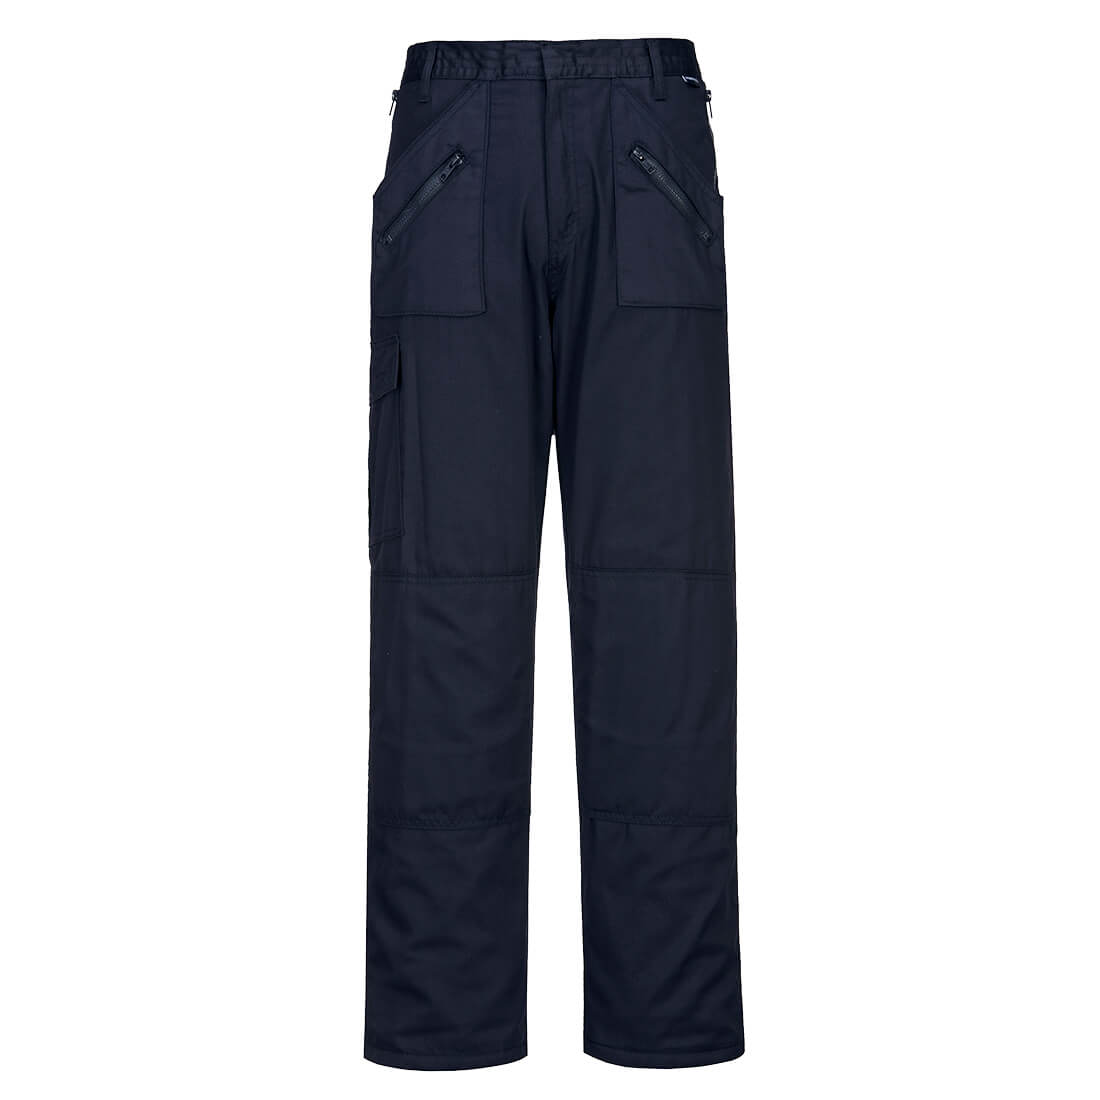 Lined Action Trousers Navy LR